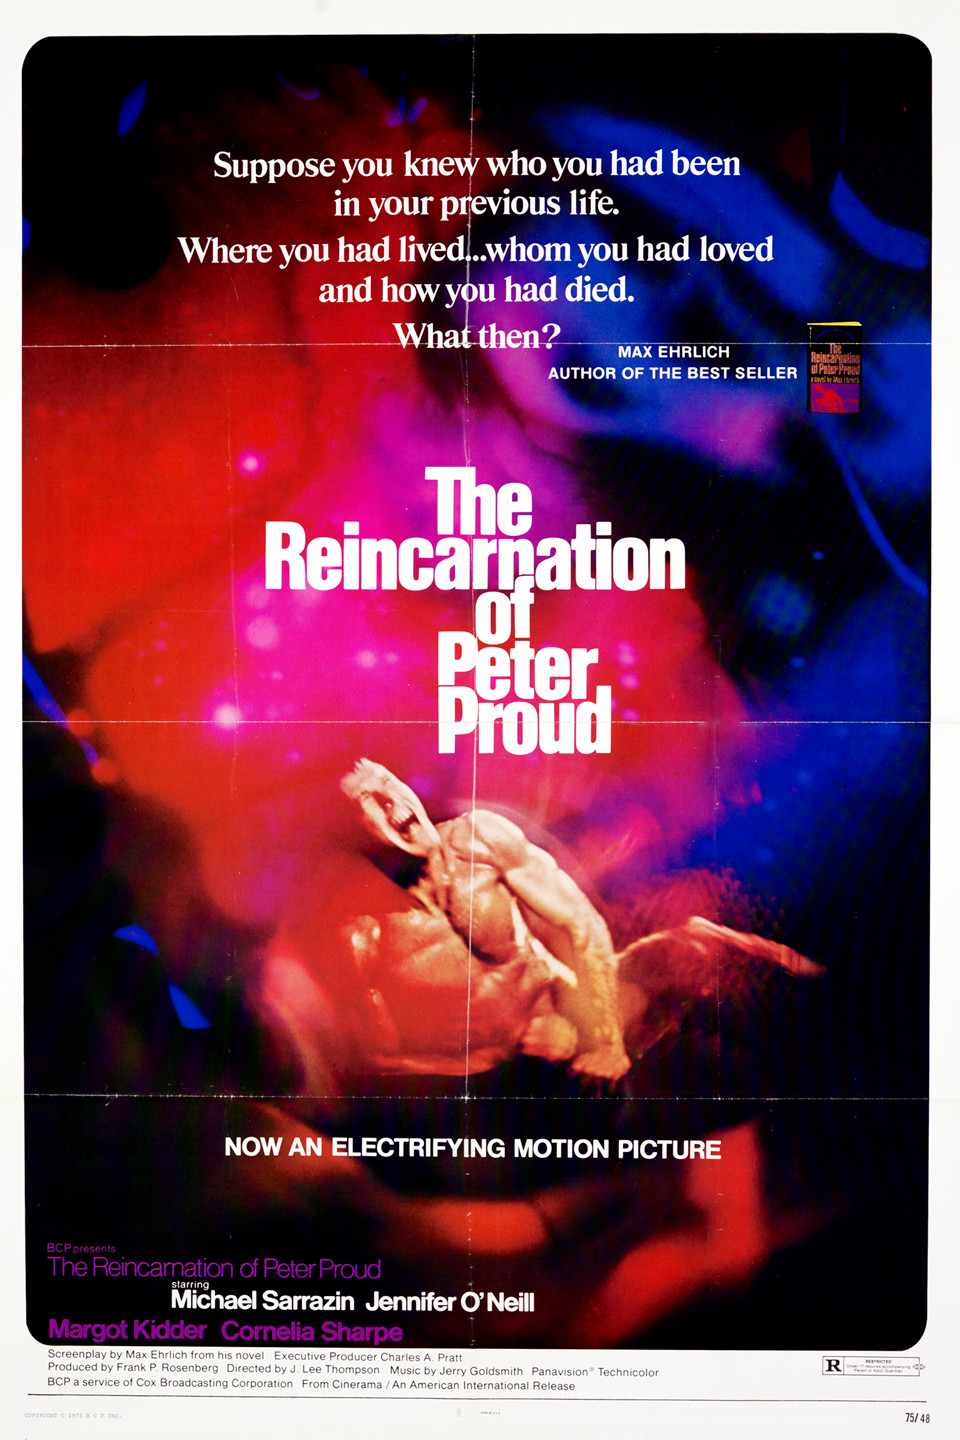 The Reincarnation of Peter Proud wwwgstaticcomtvthumbmovieposters3548p3548p